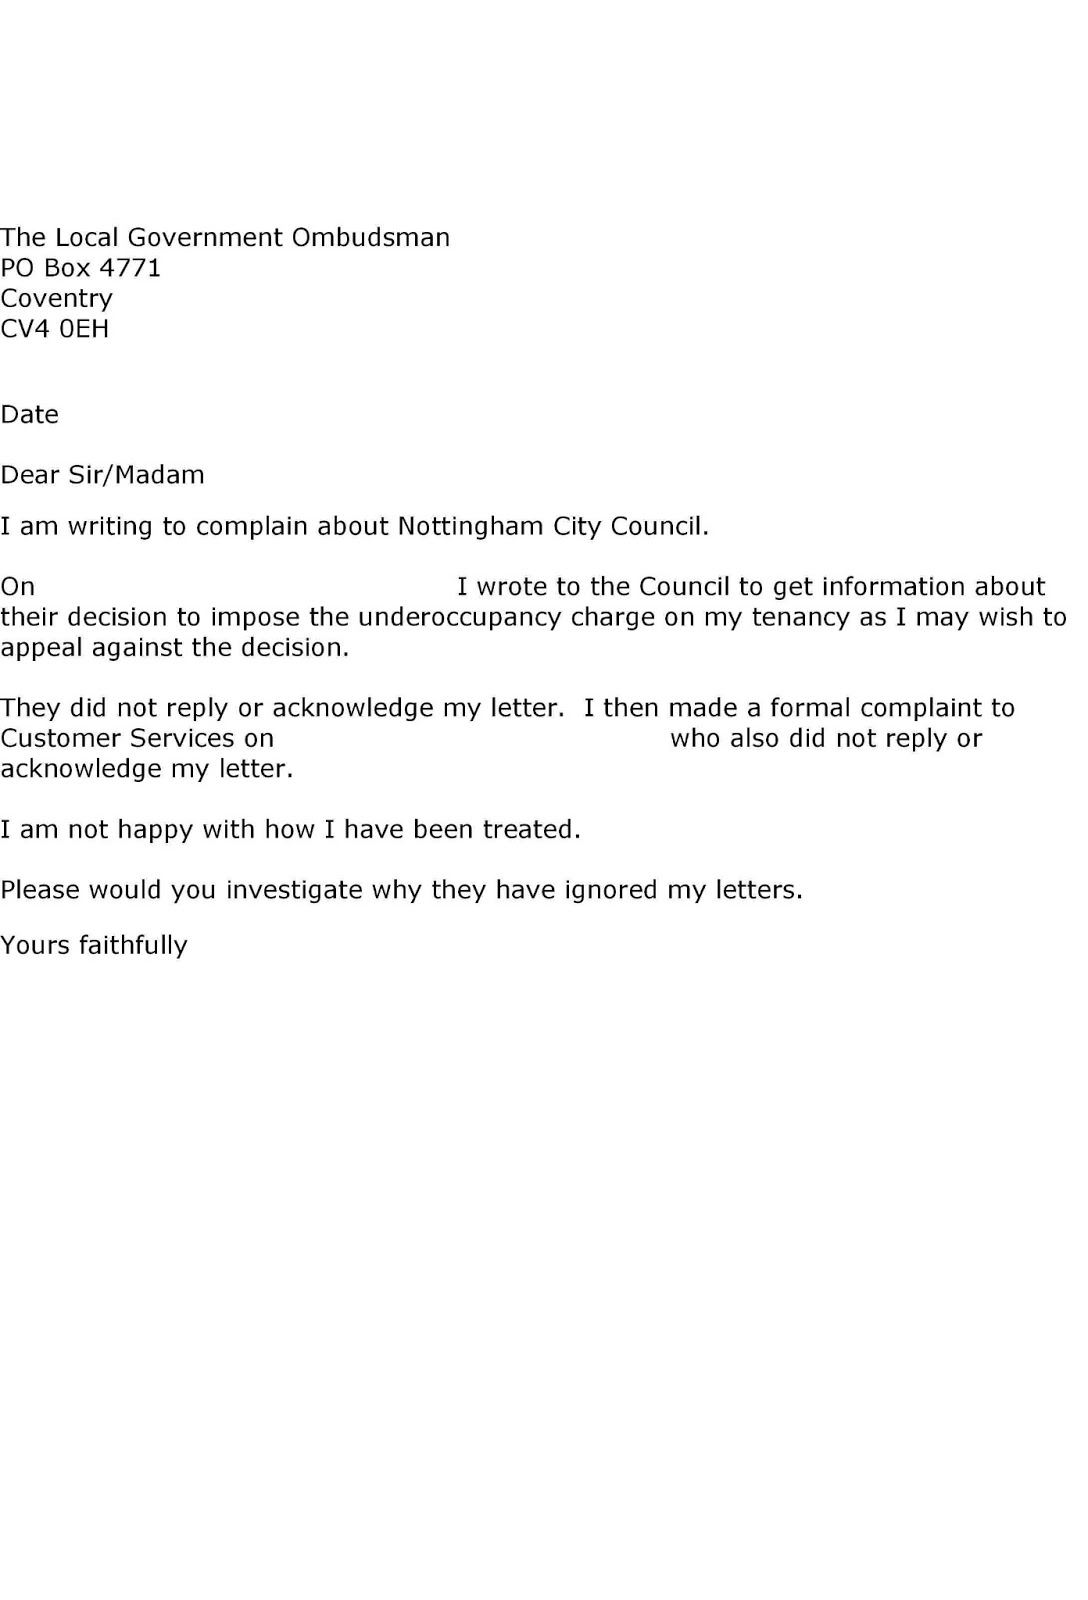 replying to a complaint letter template - defend council tax benefits letter to council challenging